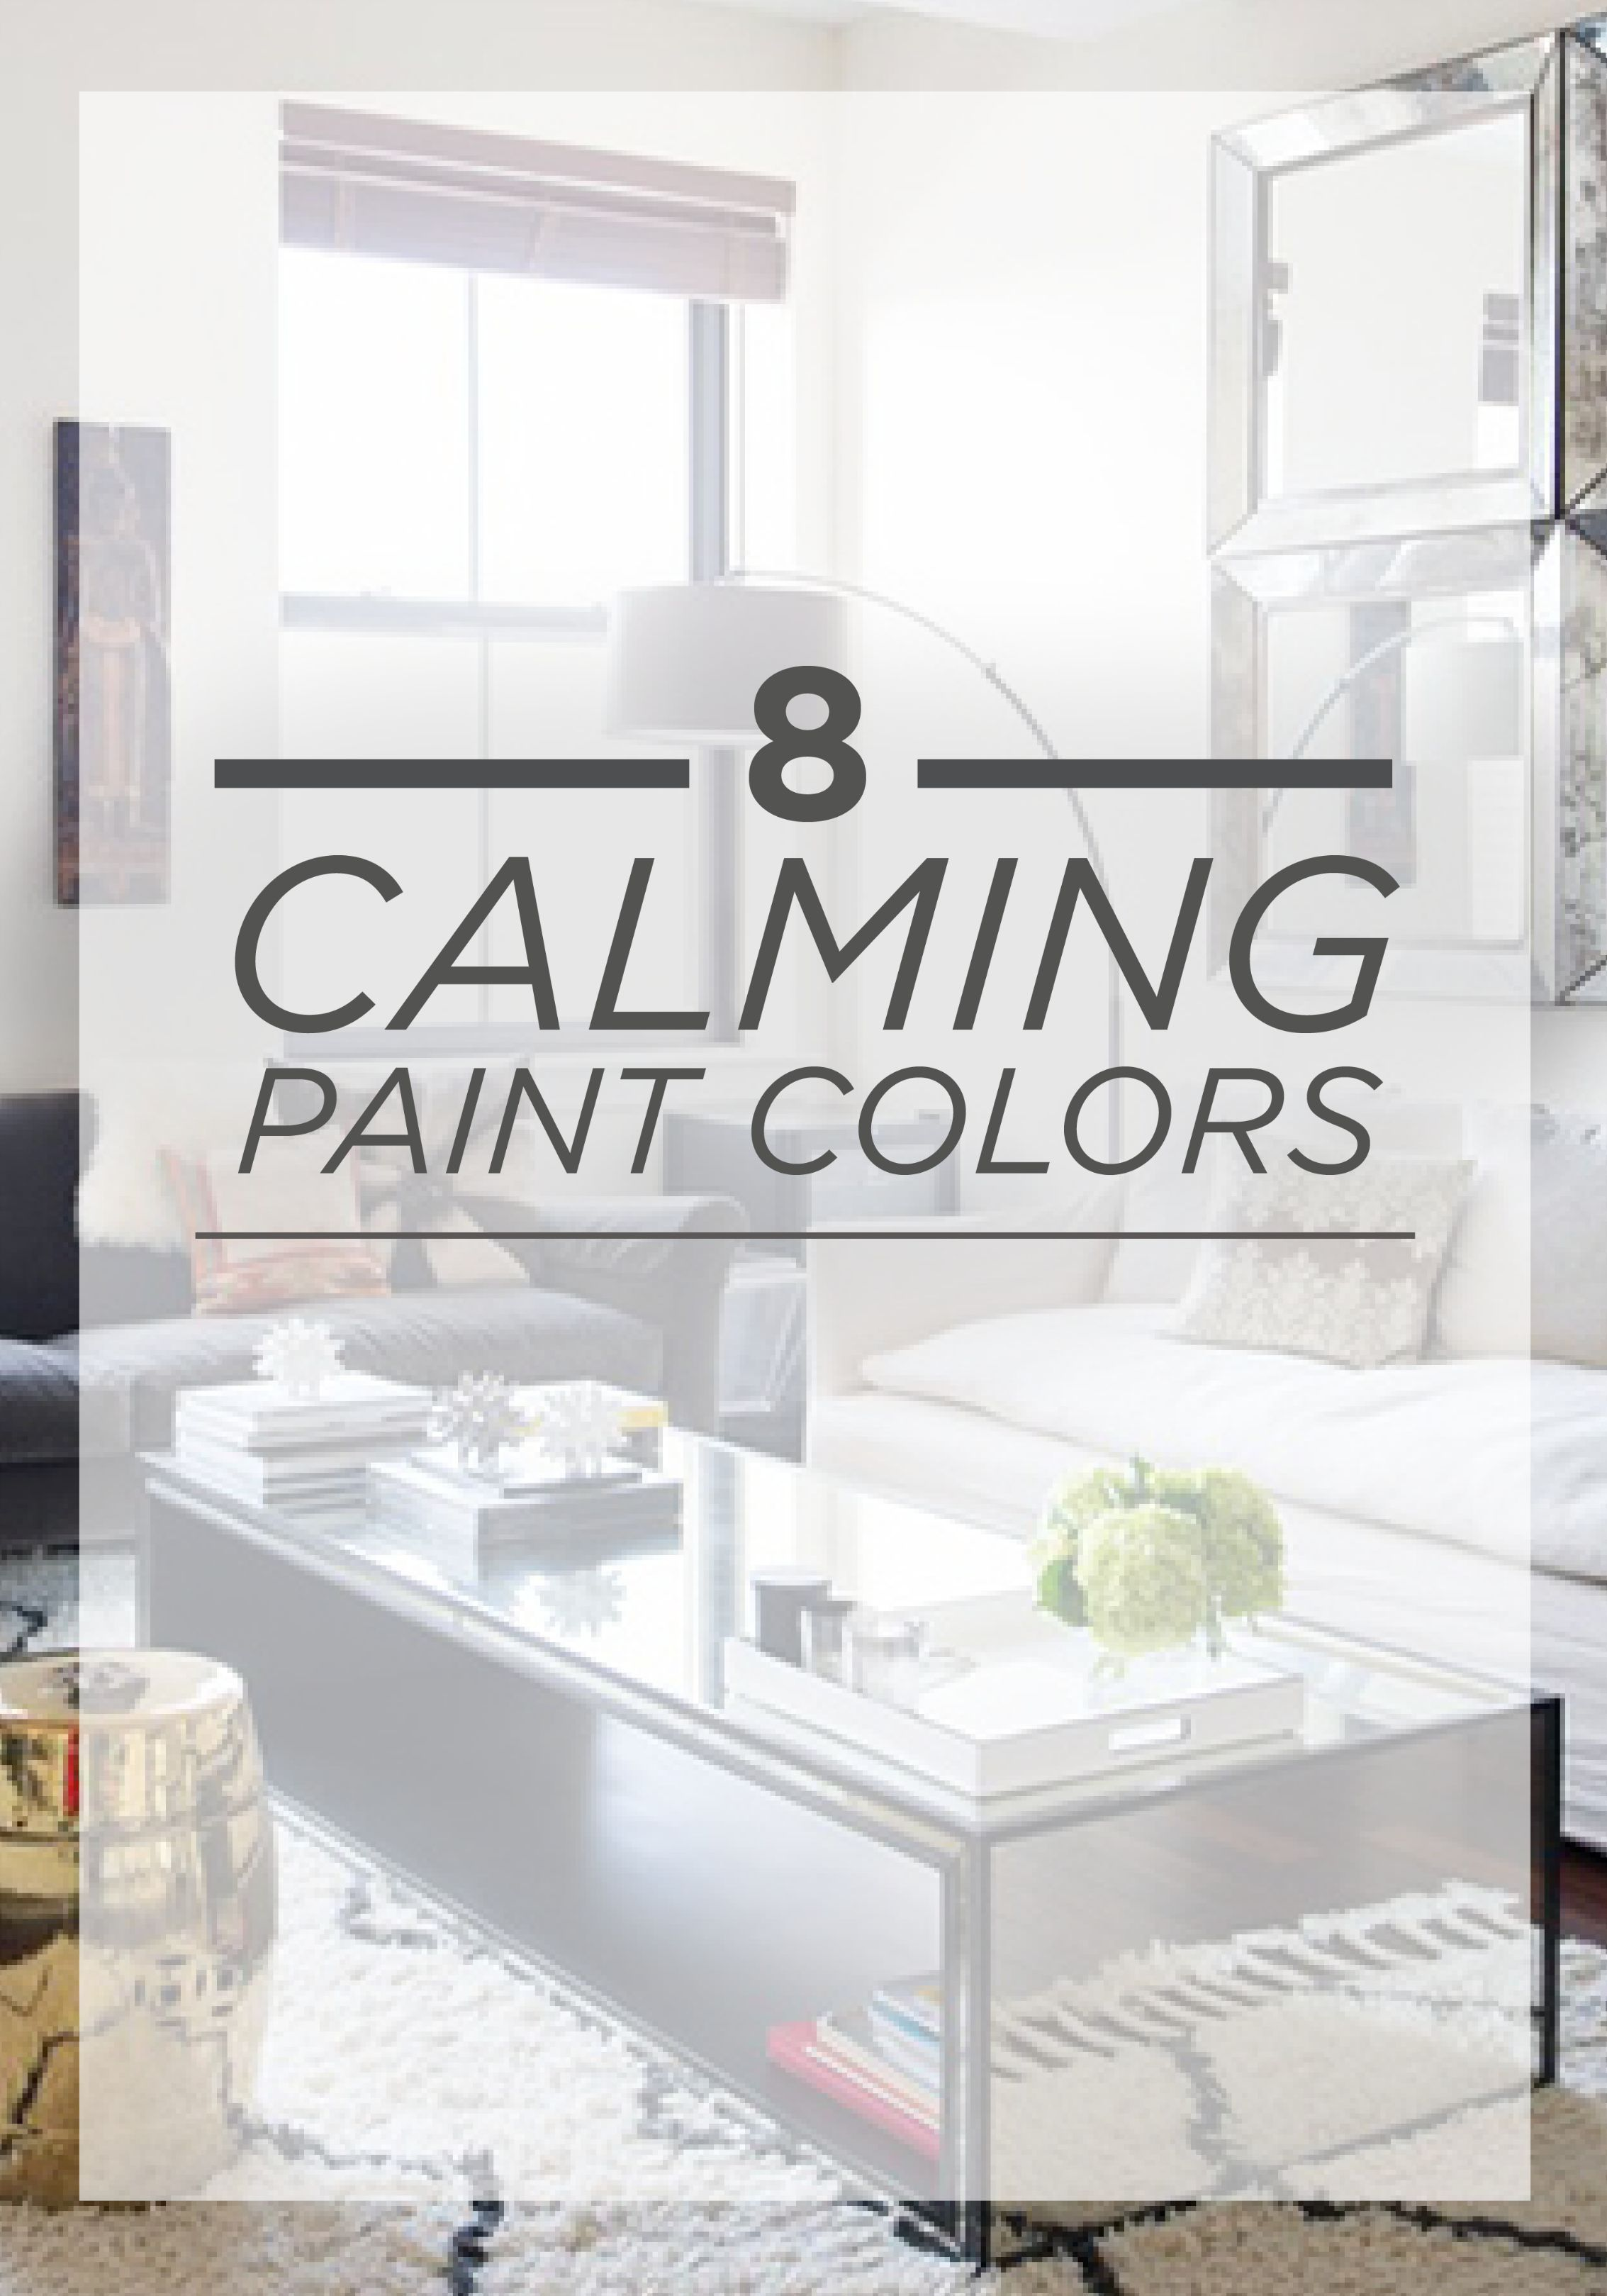 Did You Know That Certain Paint Colors Can Help Reduce